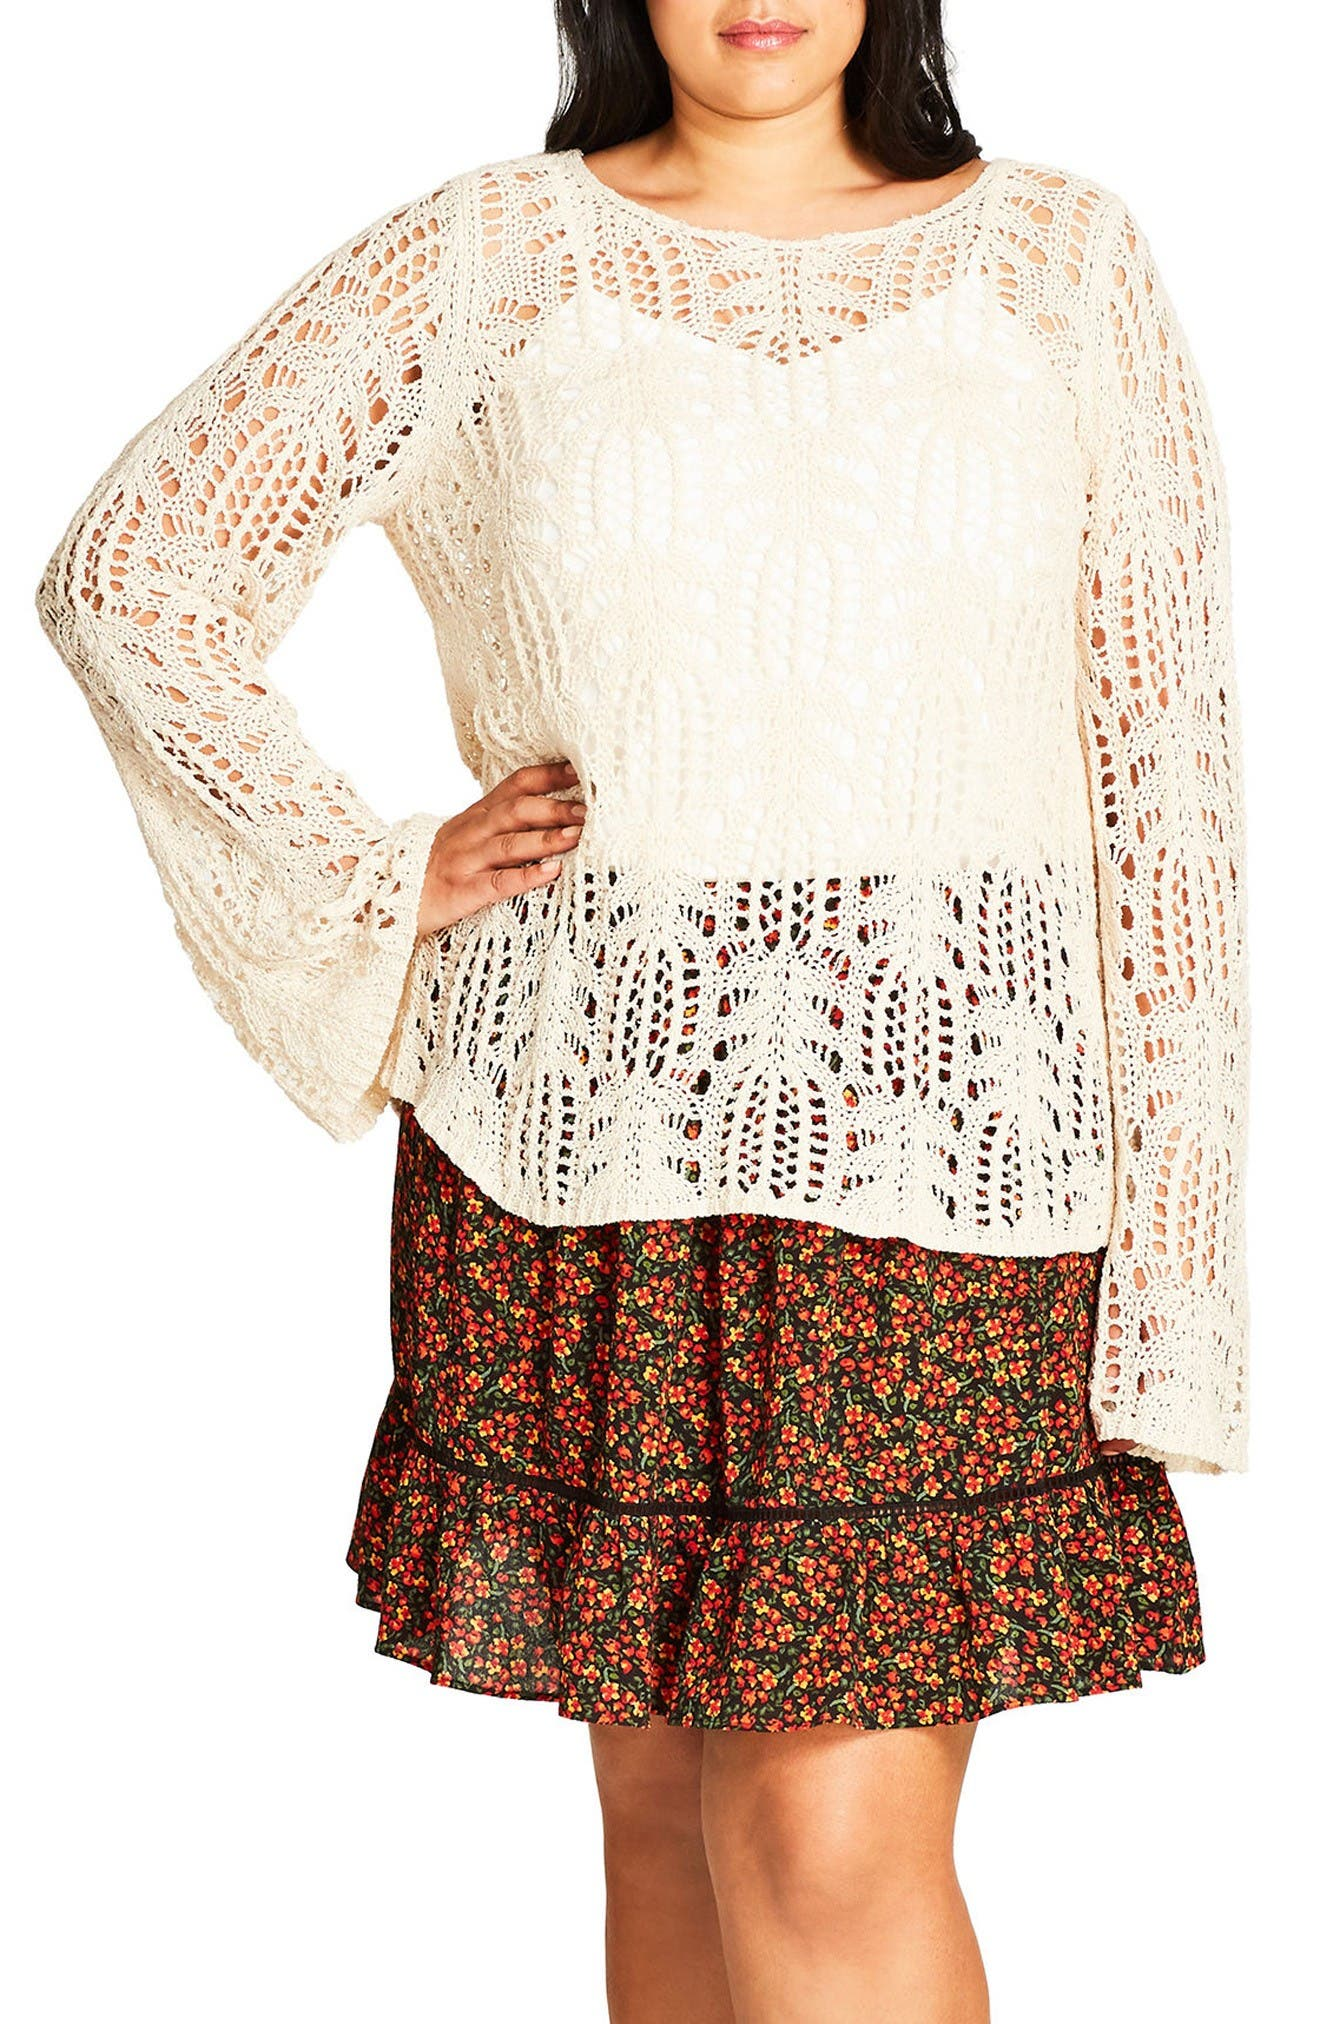 Alternate Image 1 Selected - City Chic So Delicate Crochet Sweater (Plus Size)